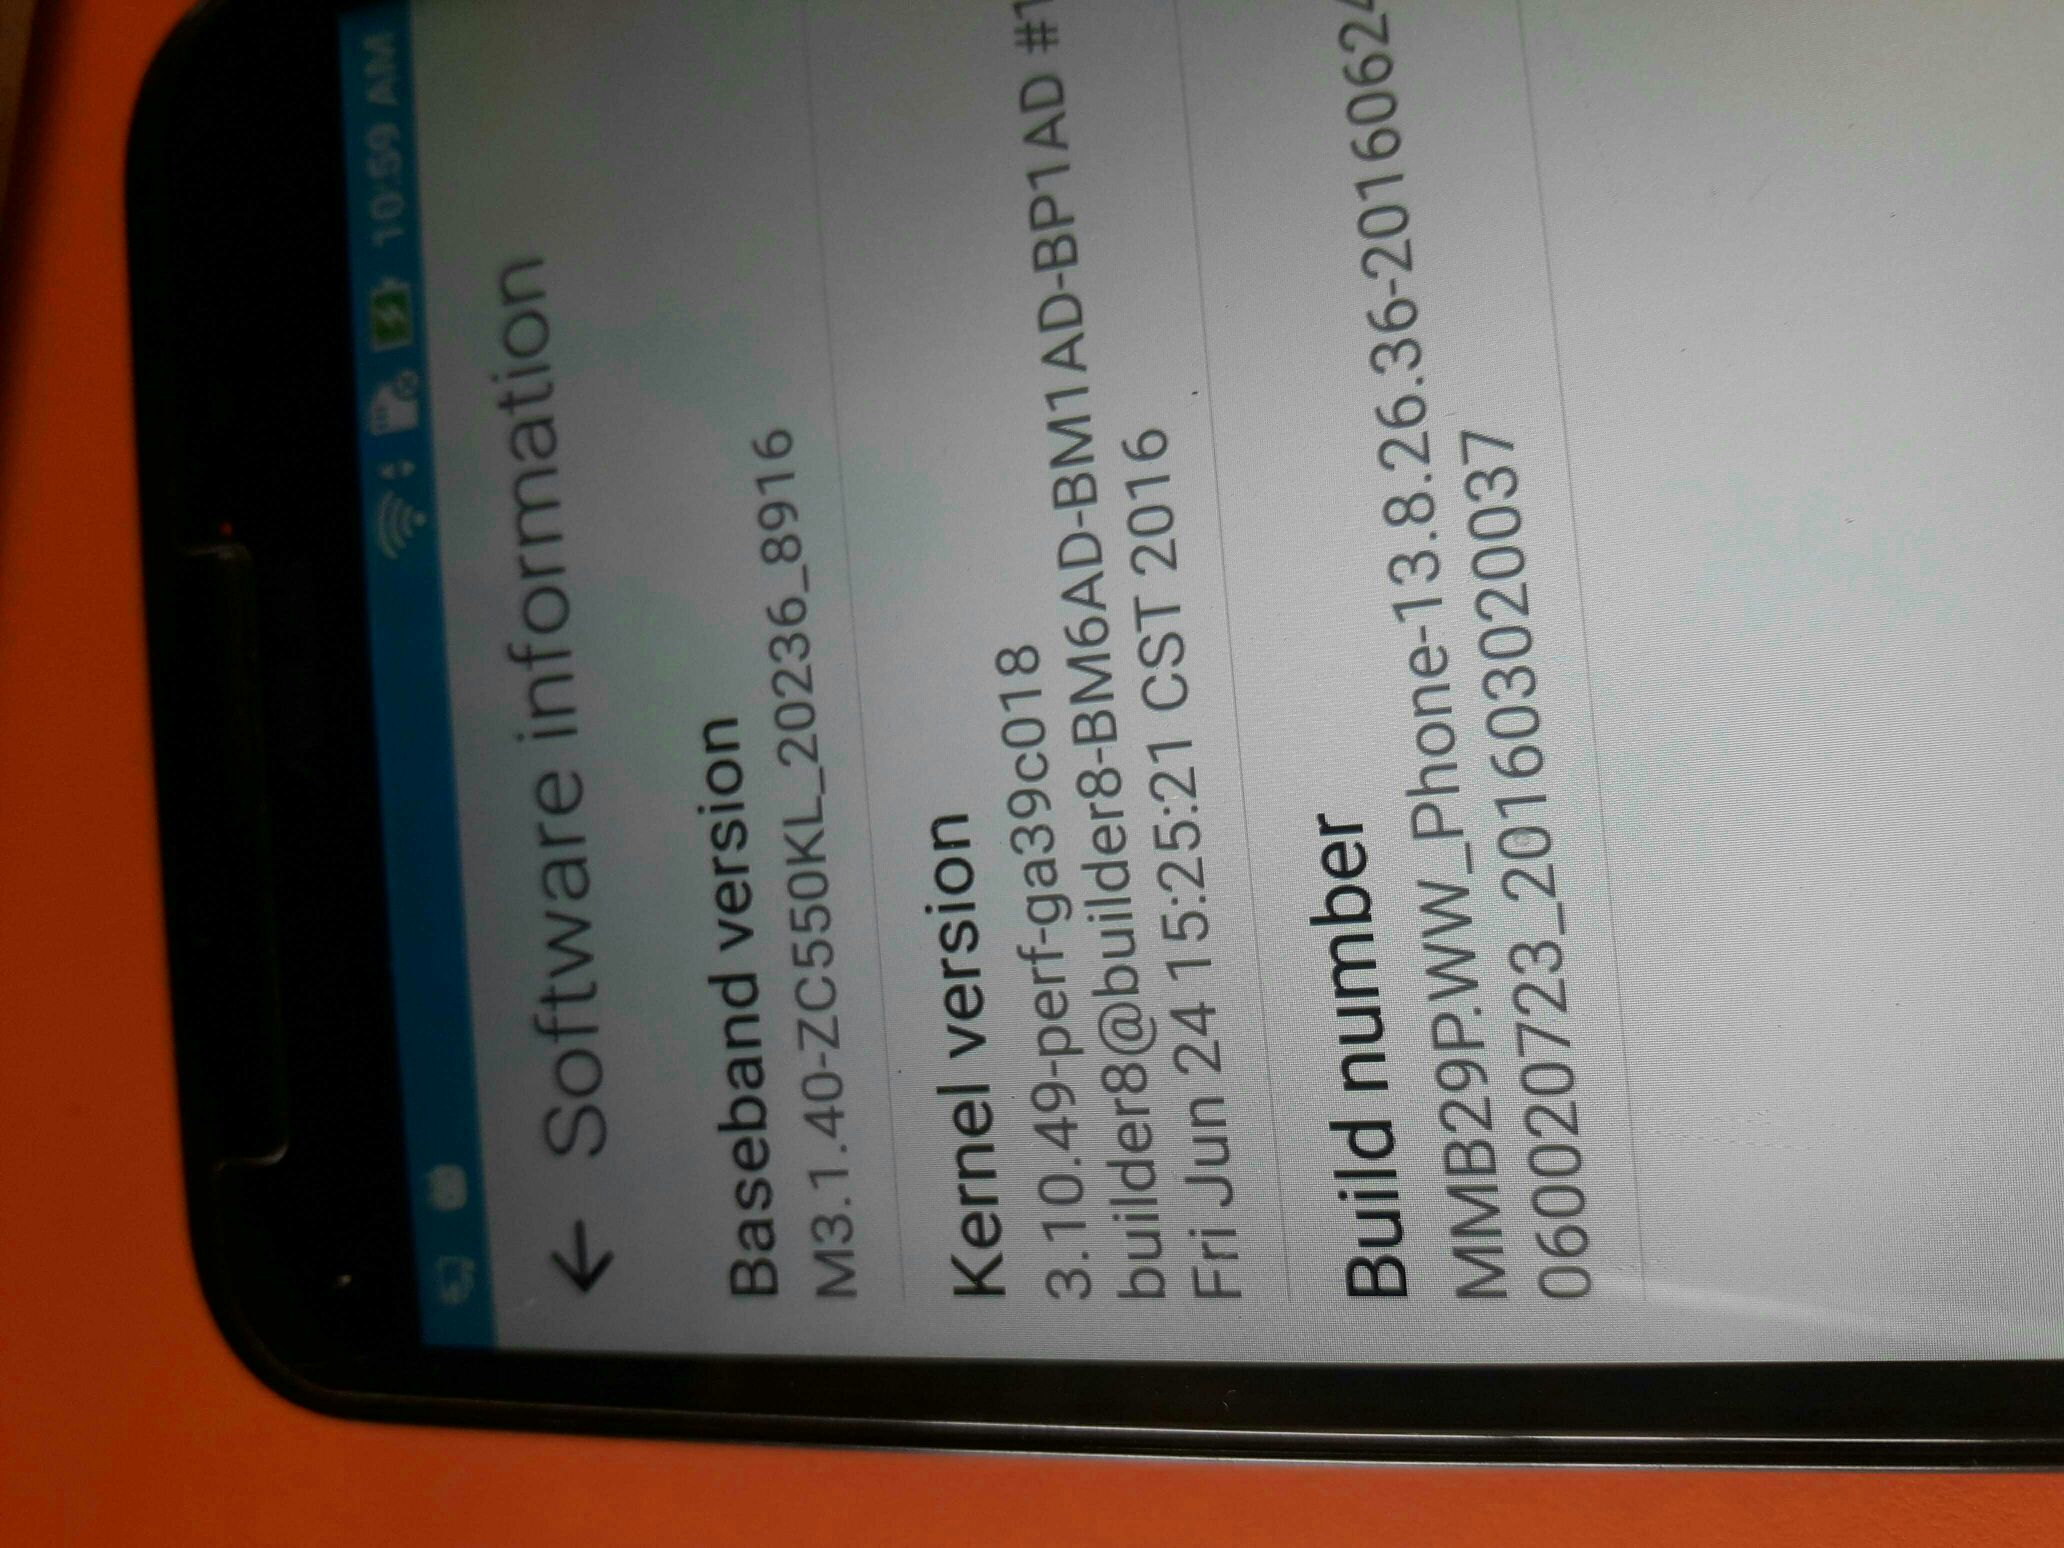 Asus Z010d how to unlock bootloder 6 0 1 Helps   [ Solved ] [Archive